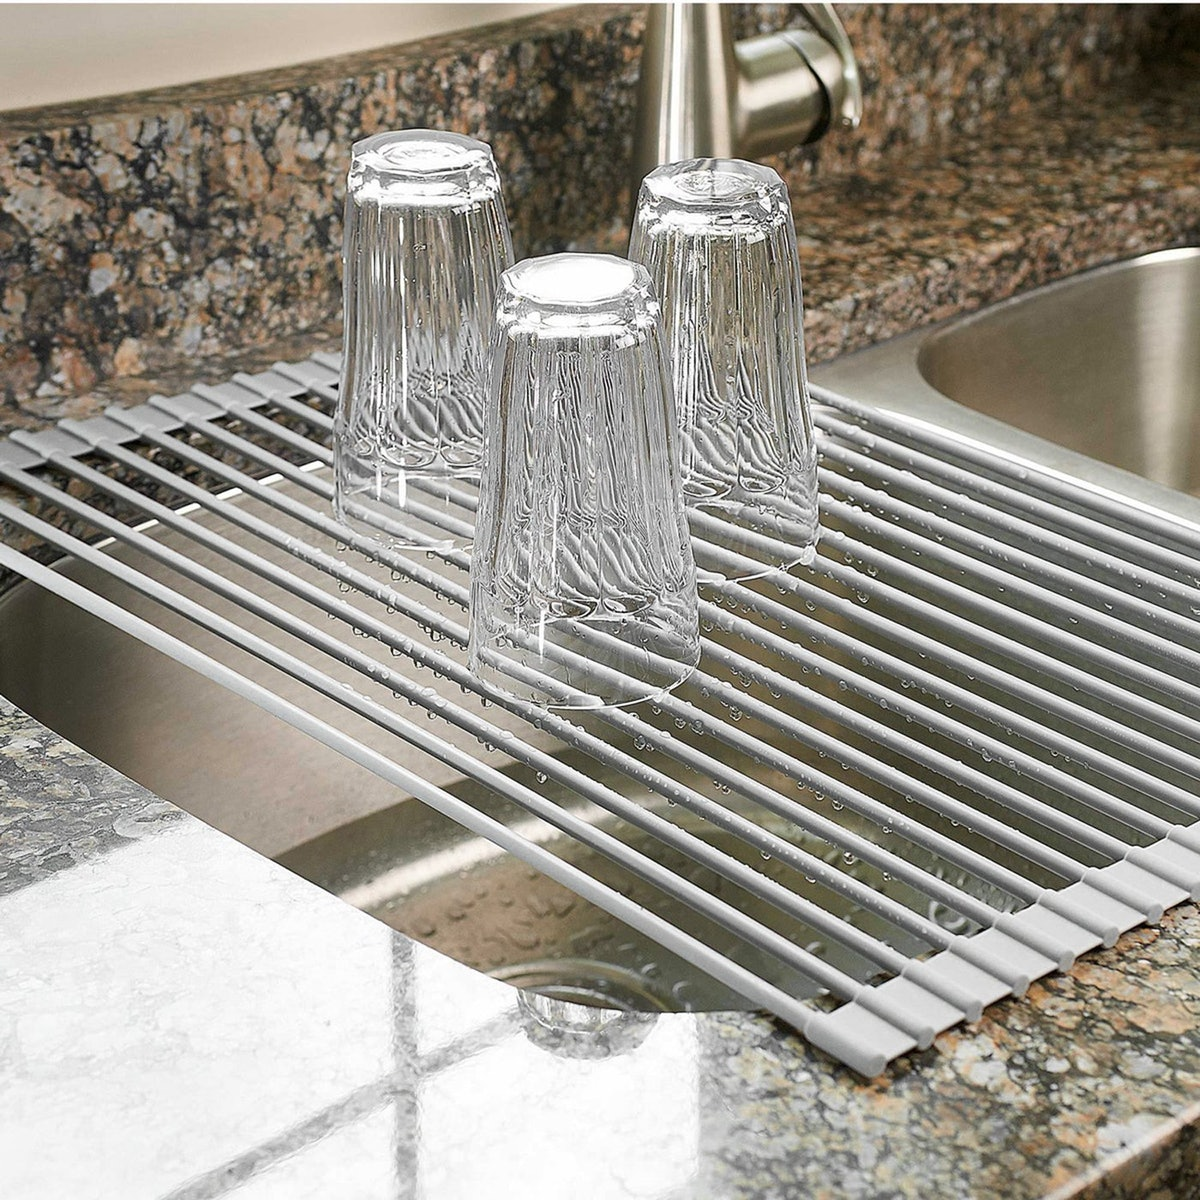 Surpahs Over-The-Sink Drying Rack